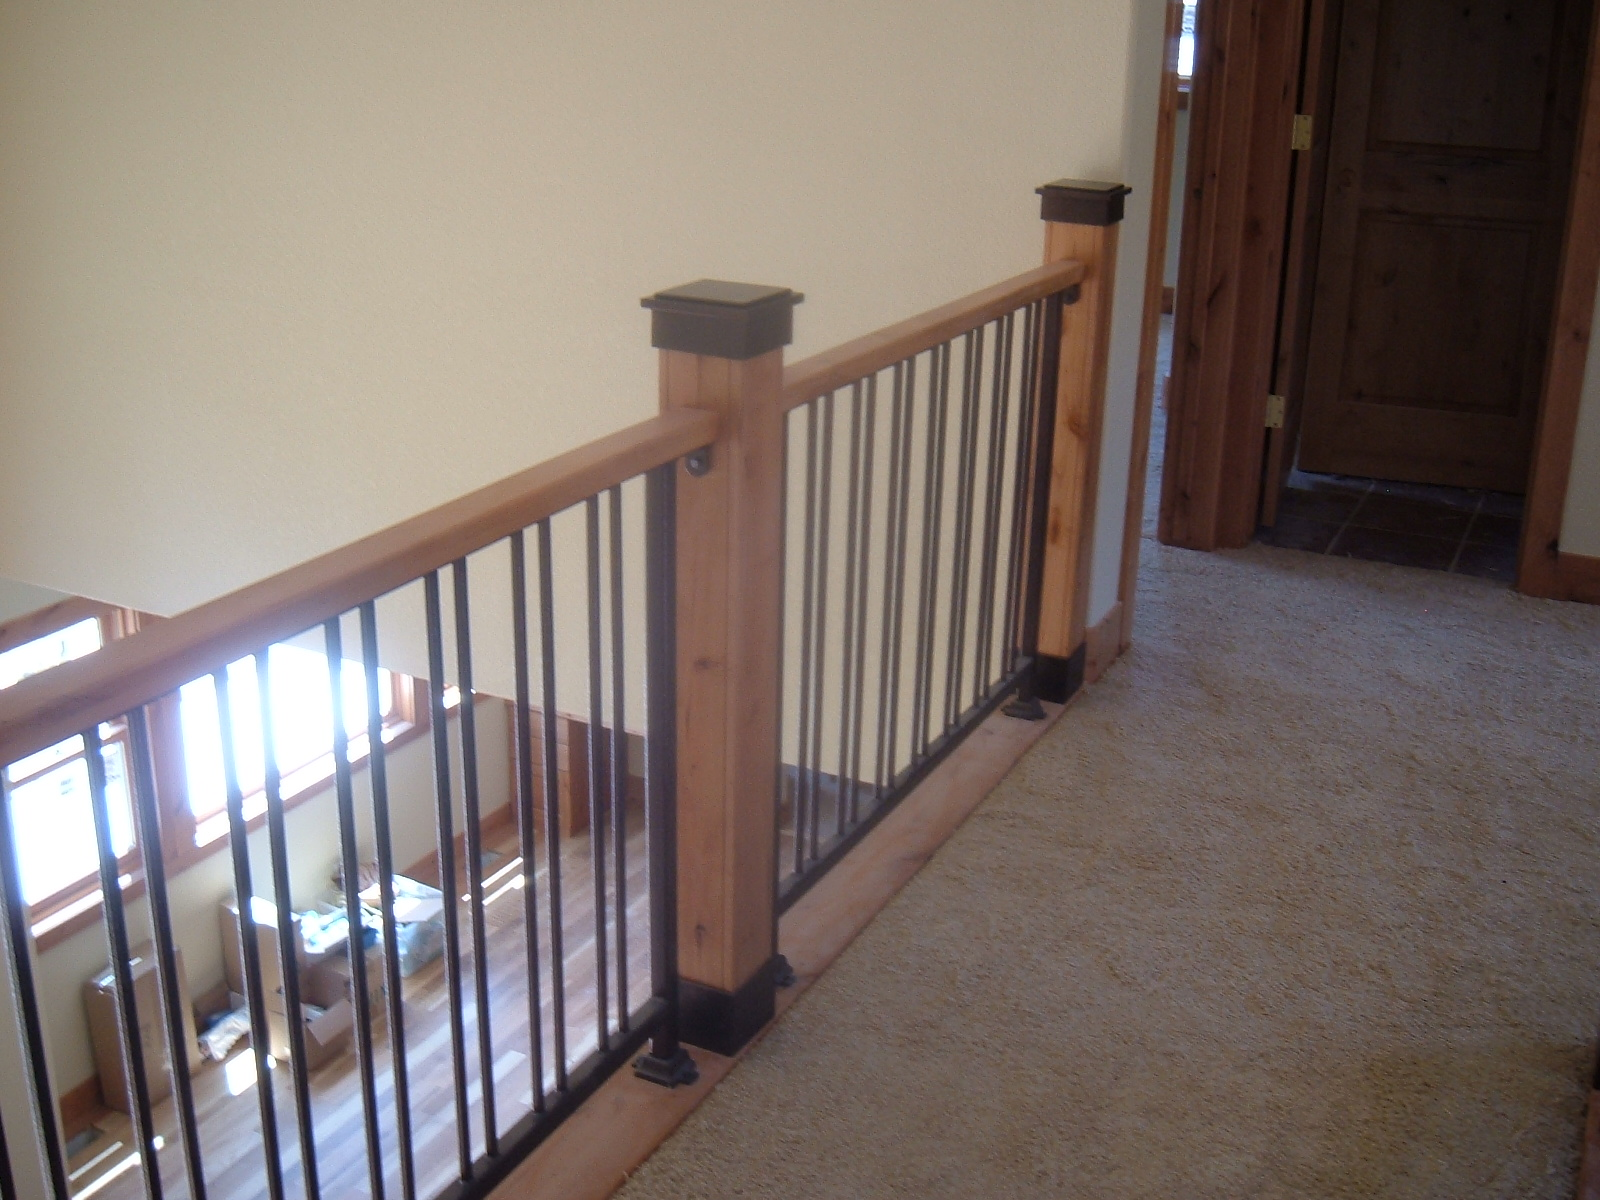 baluster-and-railings-32.jpg